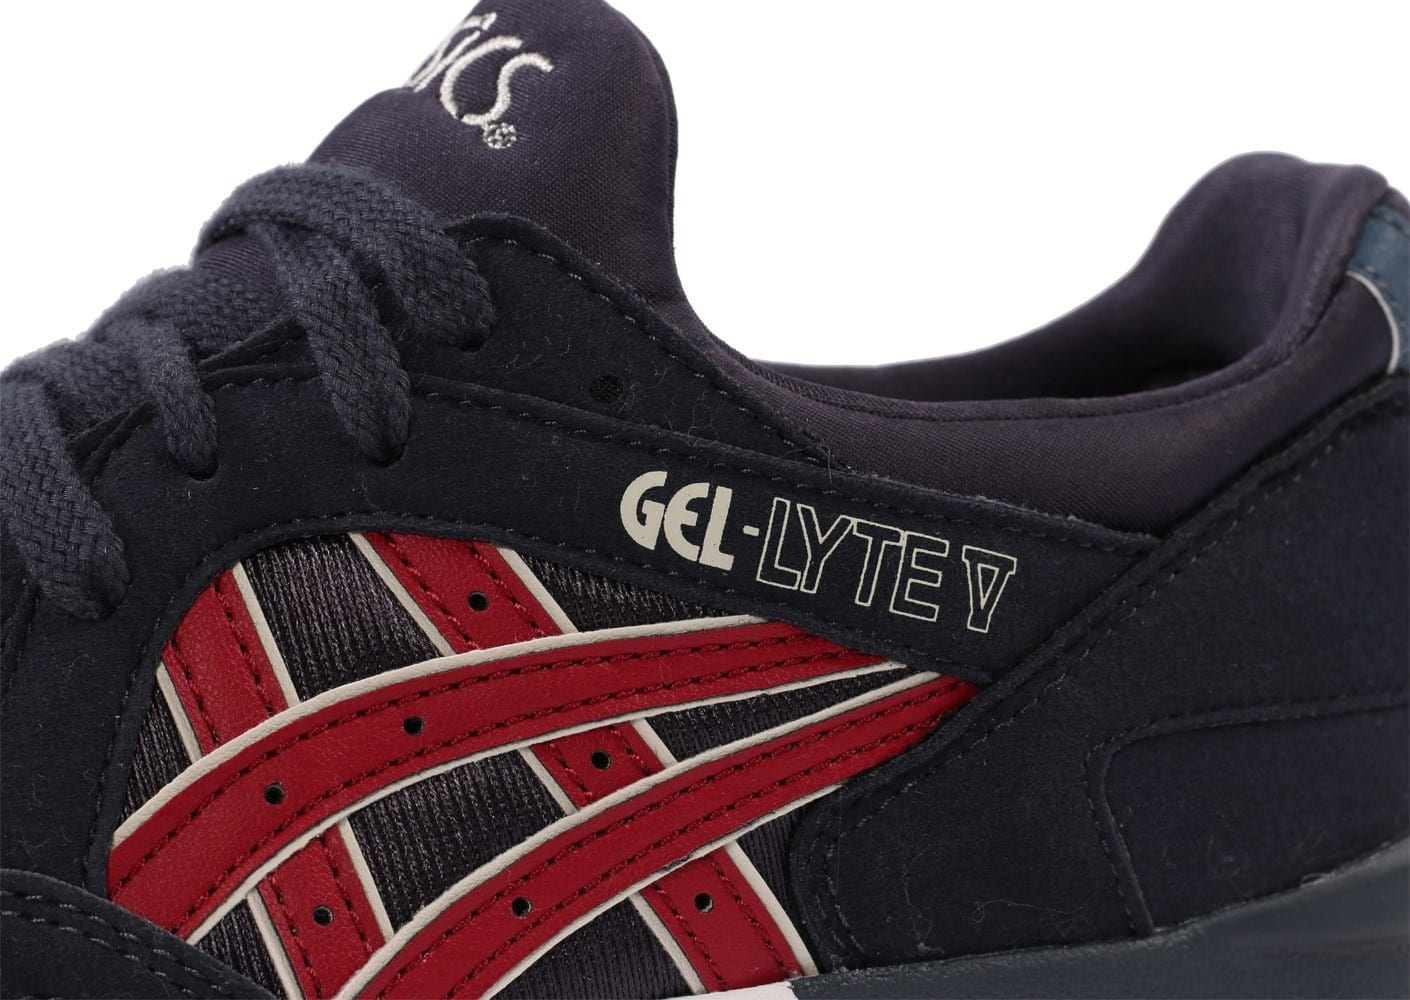 low priced ab32a 470b8 Asics Gel Lyte V Junior bleu marine et rouge - Chaussures ...